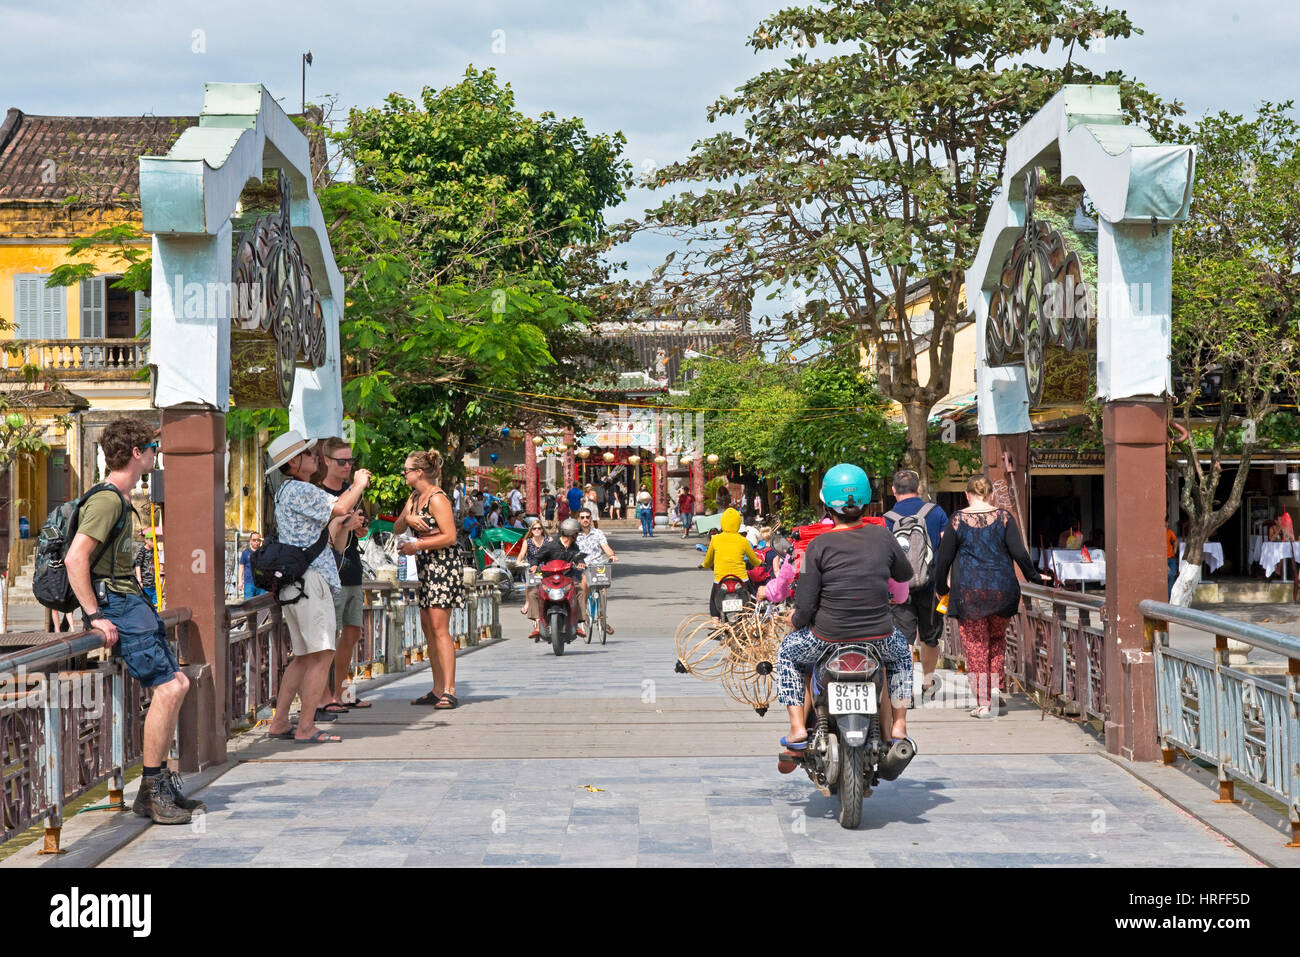 A typical street scene in Hoi An old town with tourists and local people walking, riding motor bikes across the - Stock Image